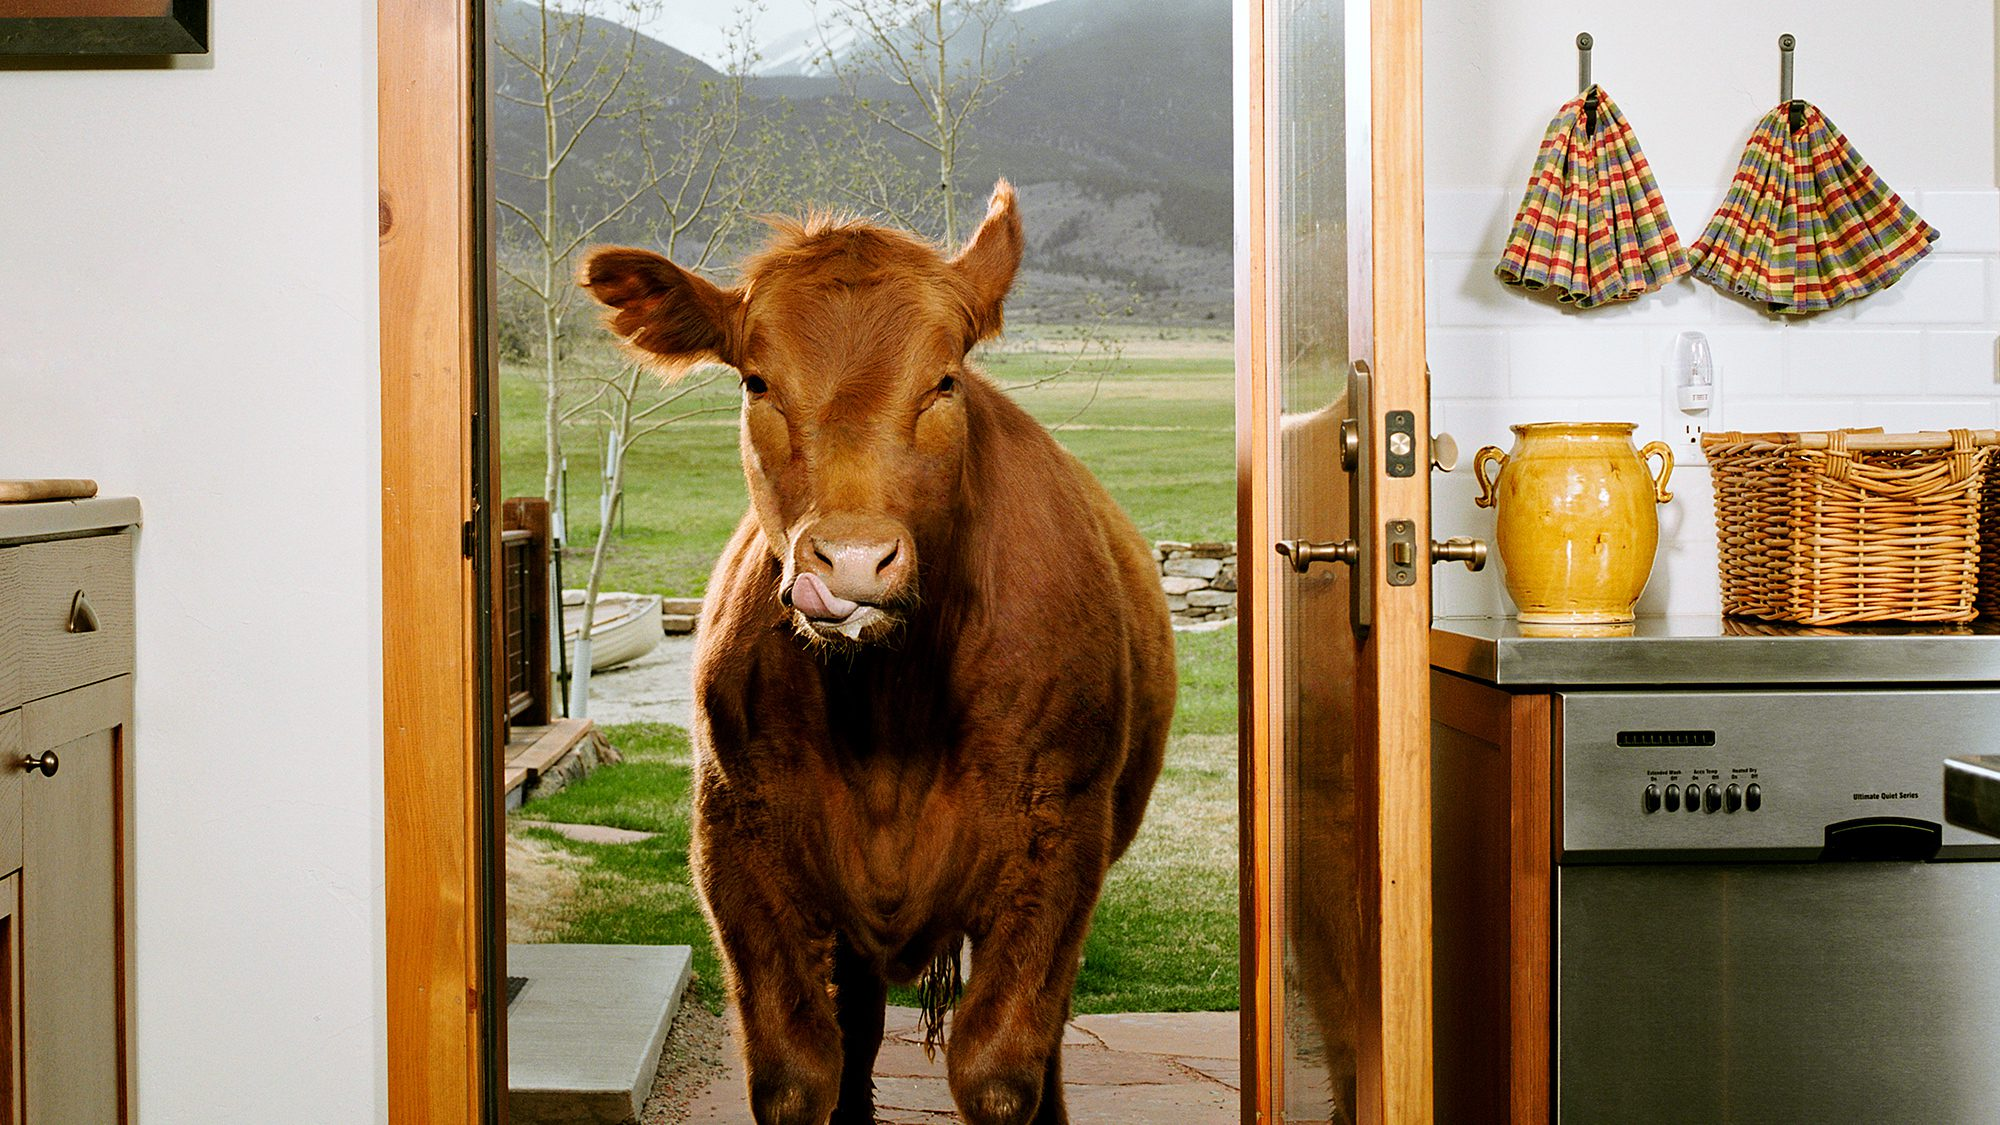 What To Buy For Housewarming Party Housewarming Party Traditions From Cows To Haint Blue Realtor